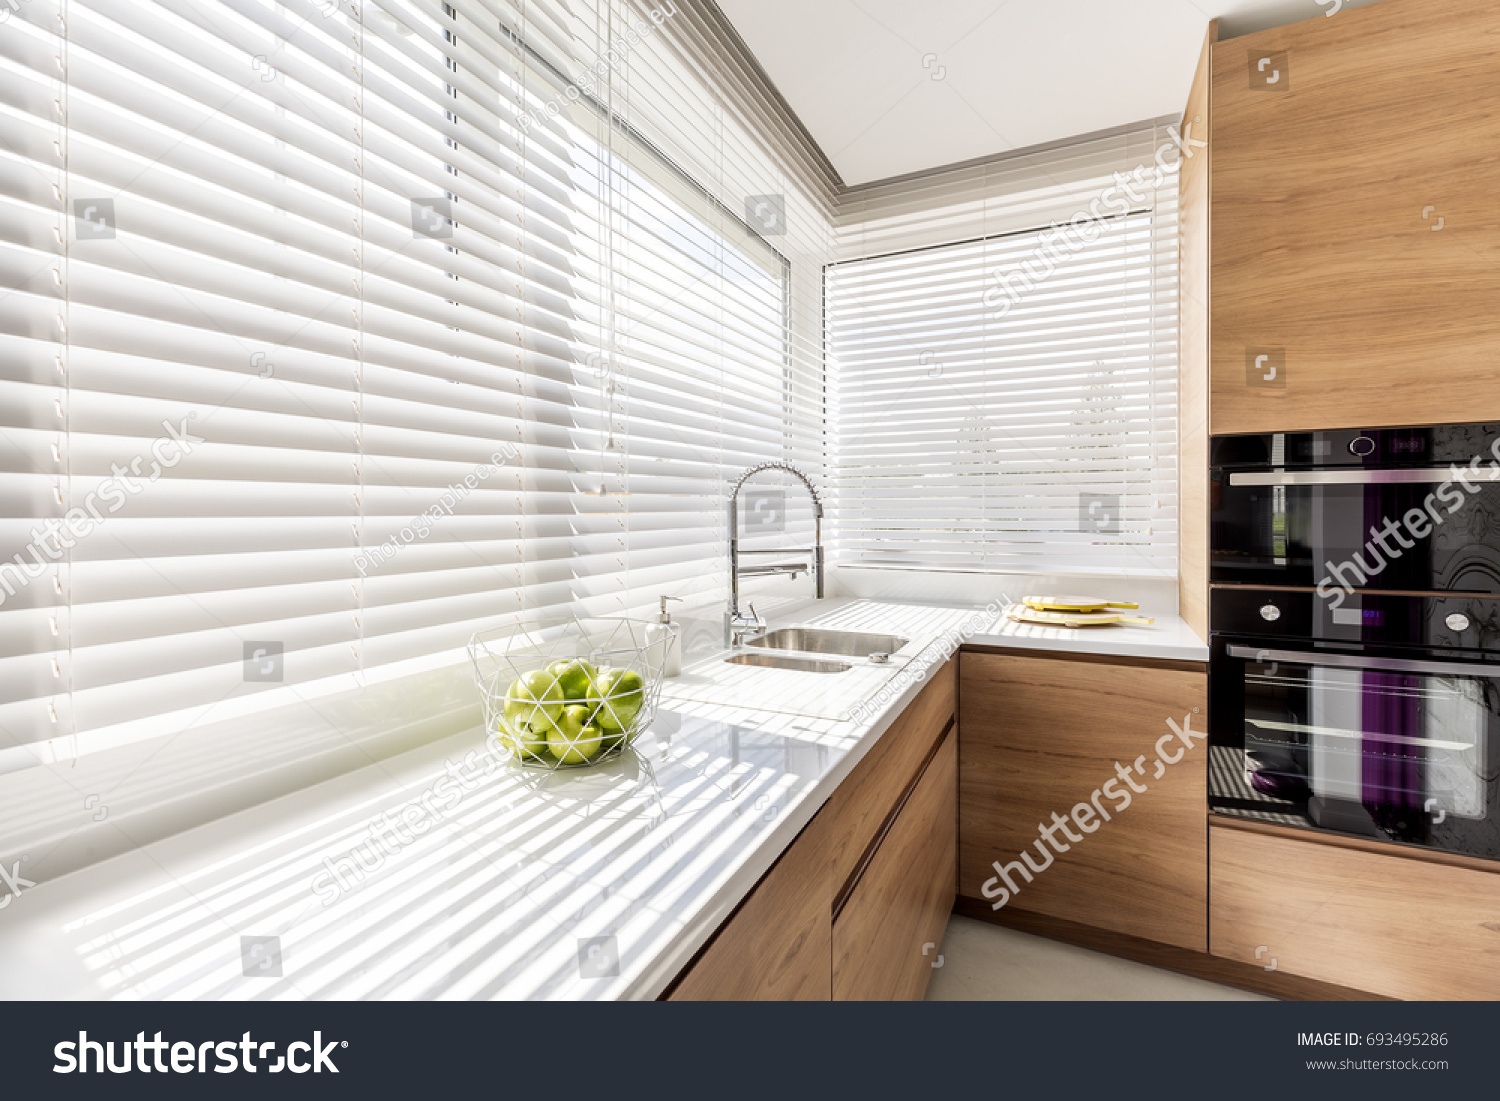 Modern bright kitchen interior with white horizontal window blinds, wooden cabinets with white countertop and household appliances #693495286